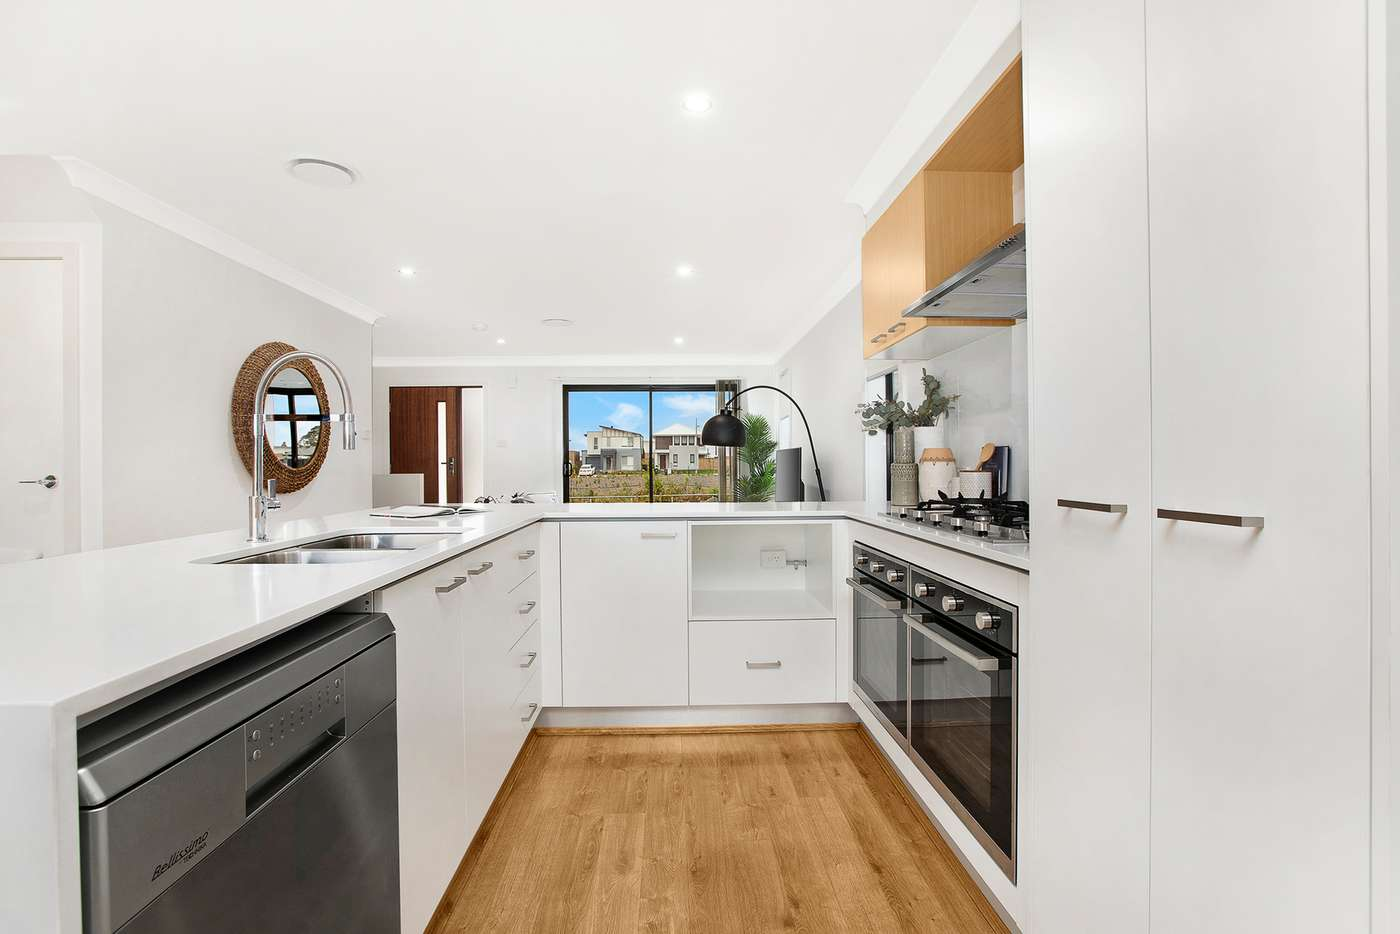 Fifth view of Homely house listing, 1351 Camden Valley Way, Leppington NSW 2179